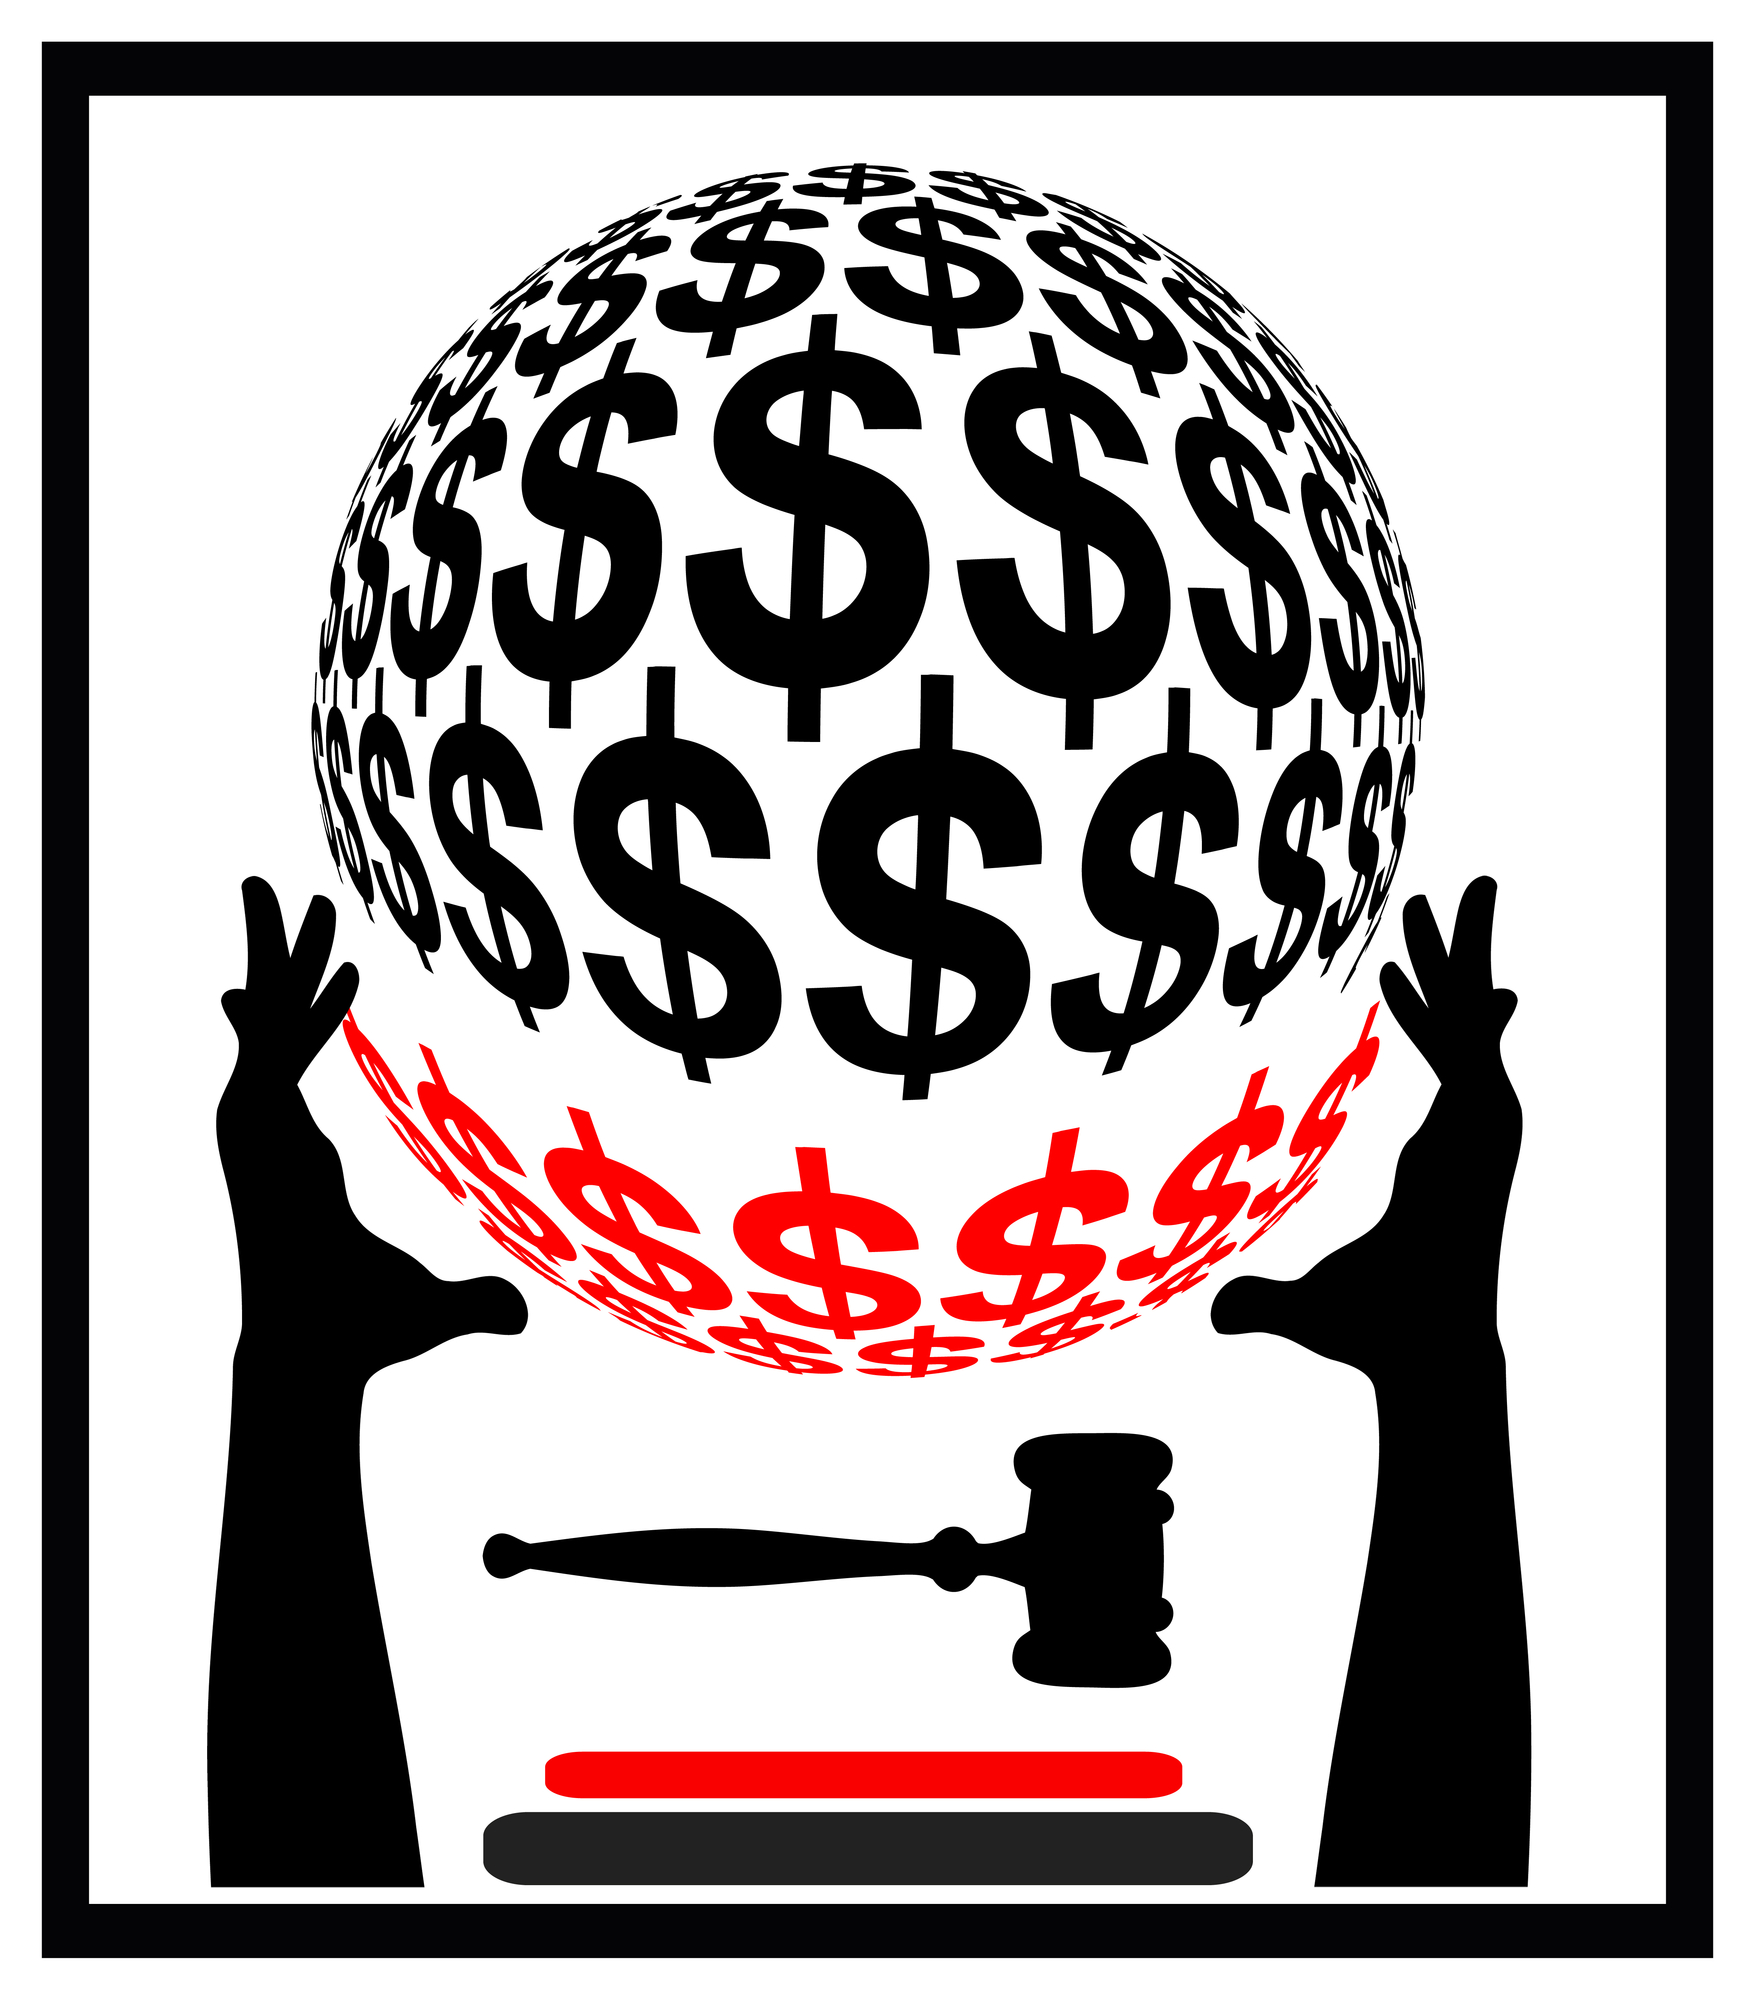 graphic of hands holding ball of dollar signs with court gavel underneath ball